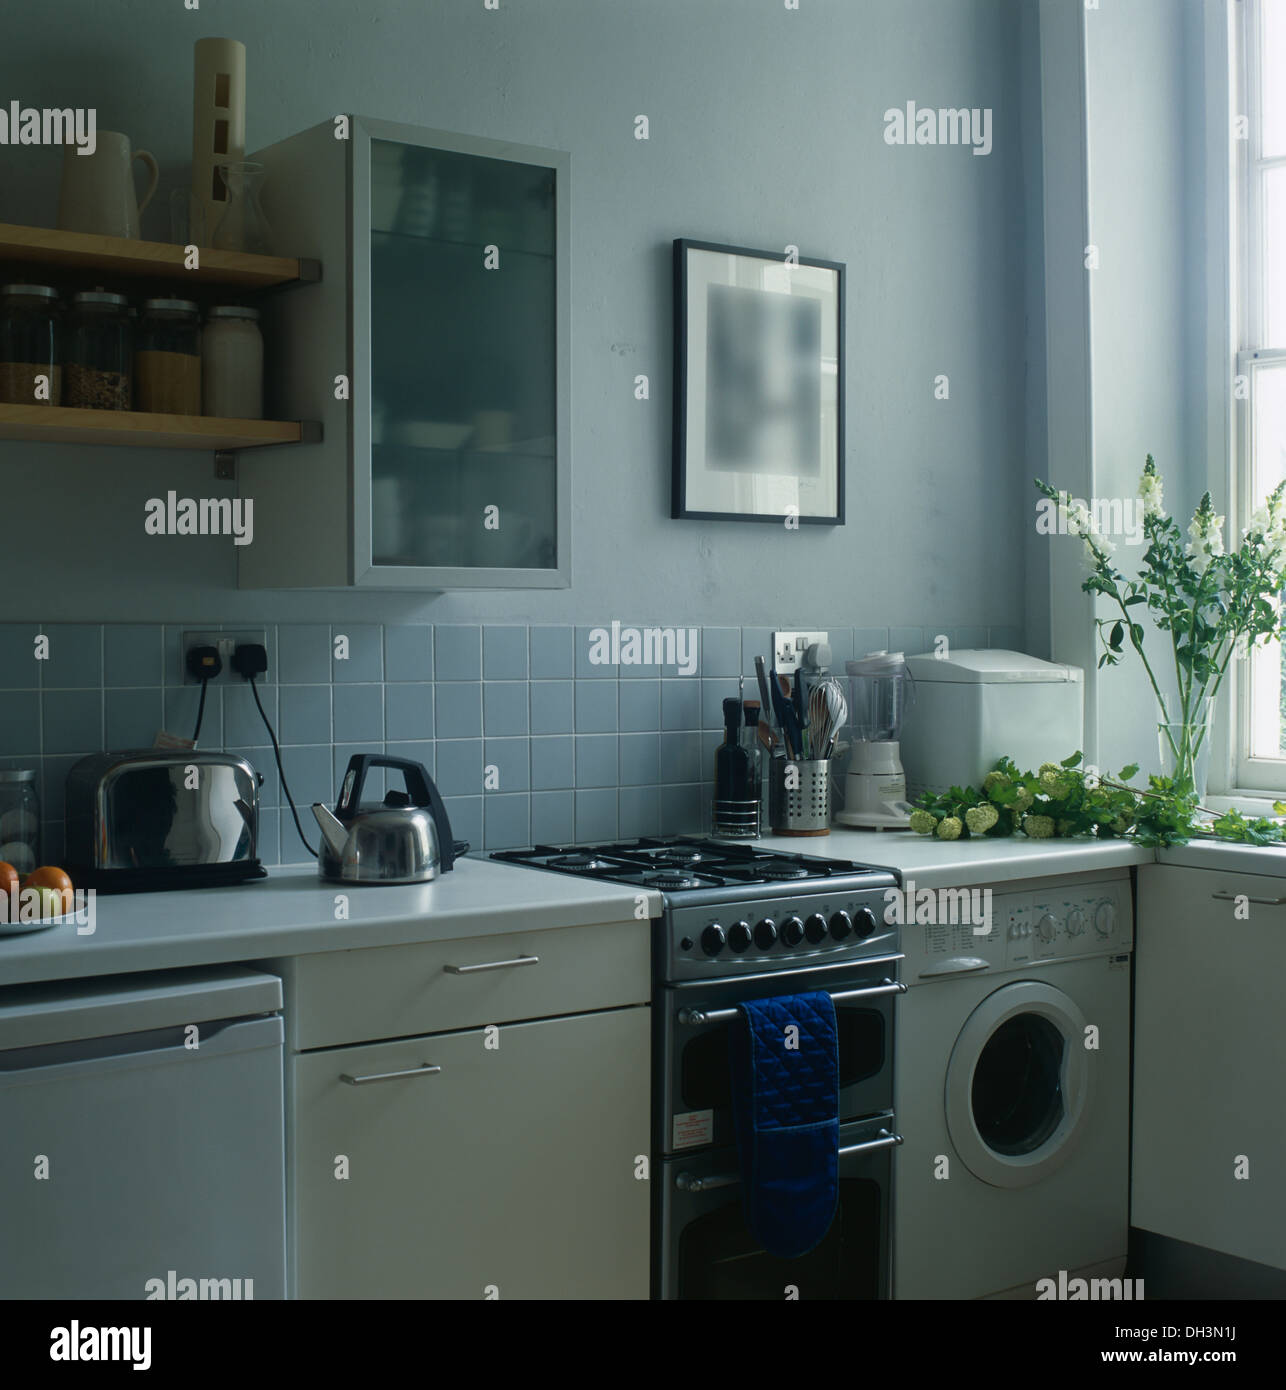 Shelves Above Oven In Kitchen Stock Photos & Shelves Above Oven In ...